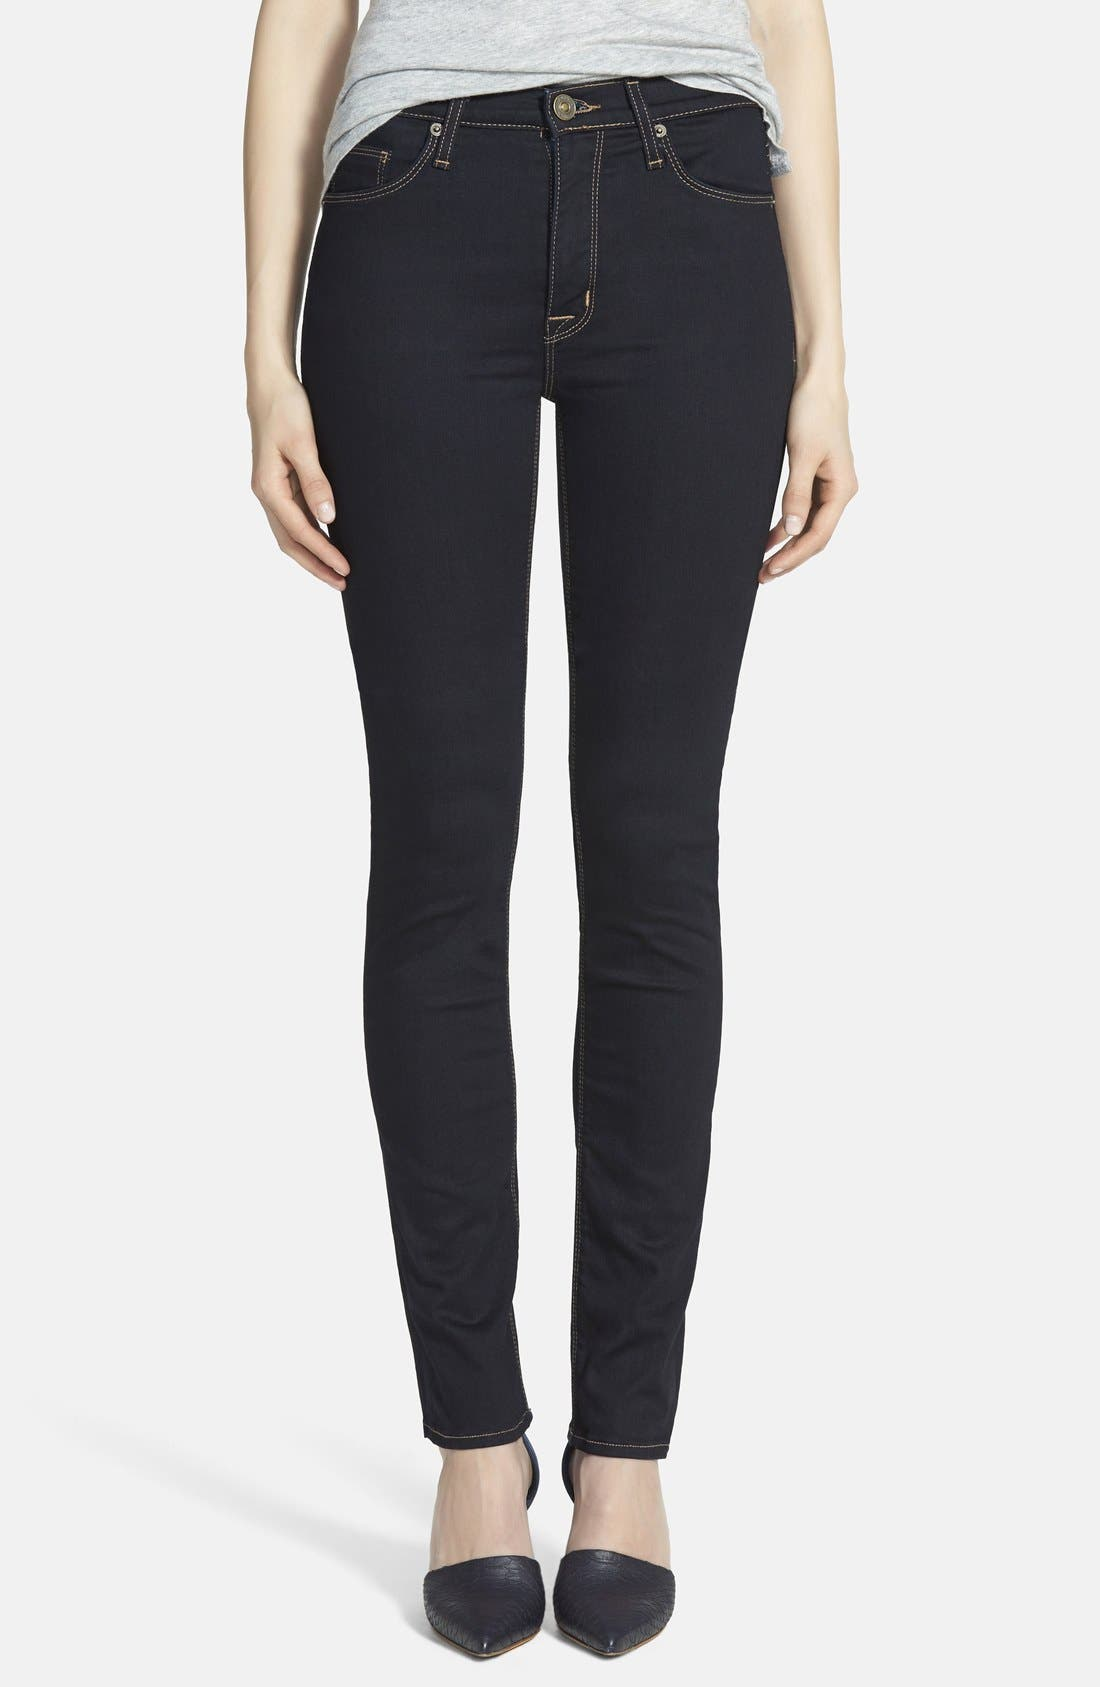 Alternate Image 1 Selected - Hudson Jeans 'Tilda' Mid Rise Straight Leg Jeans (Storm)